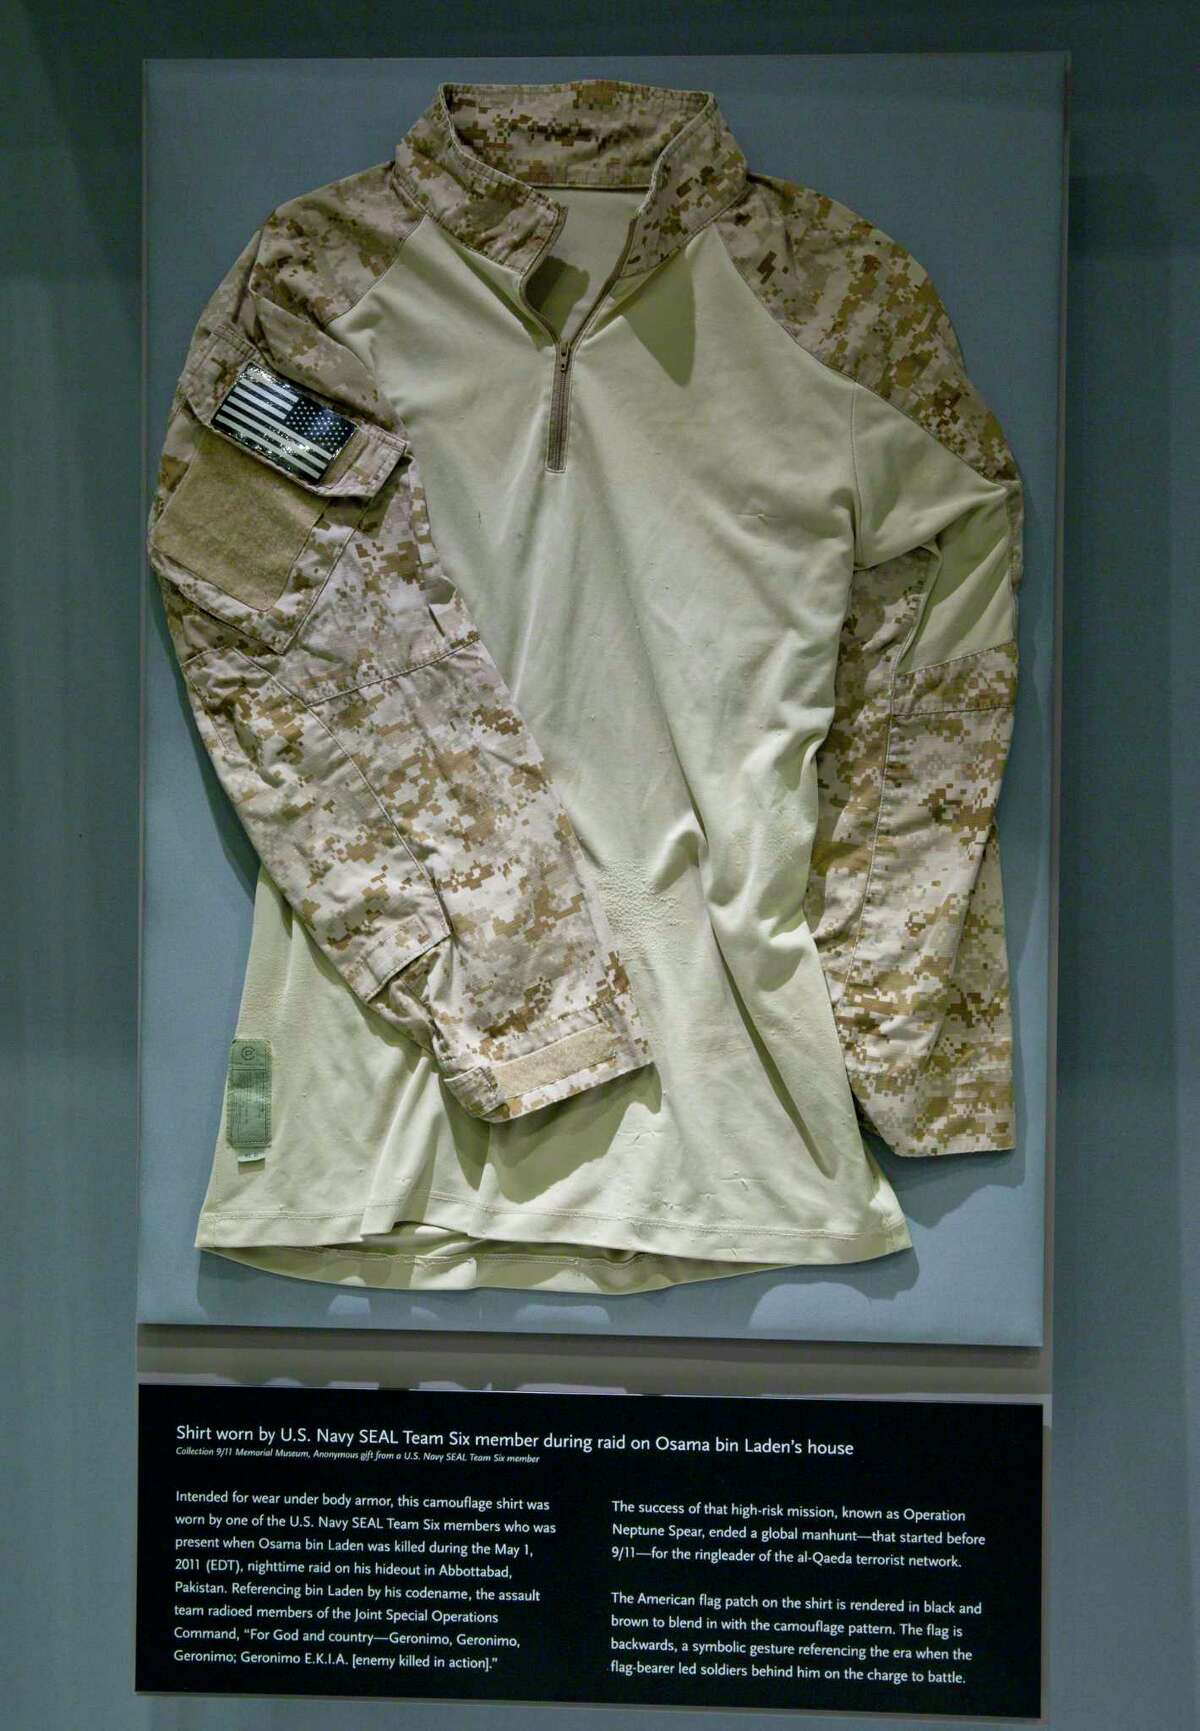 A case containing the fatigue shirt worn by the U.S. Navy SEAL during the mission to capture Osama Bin Laden is seen at the museum in New York. The shirt is among items donated by persons involved with the mission that are part of a new exhibit and will be introduced at the museum on Sunday, Sept. 7.